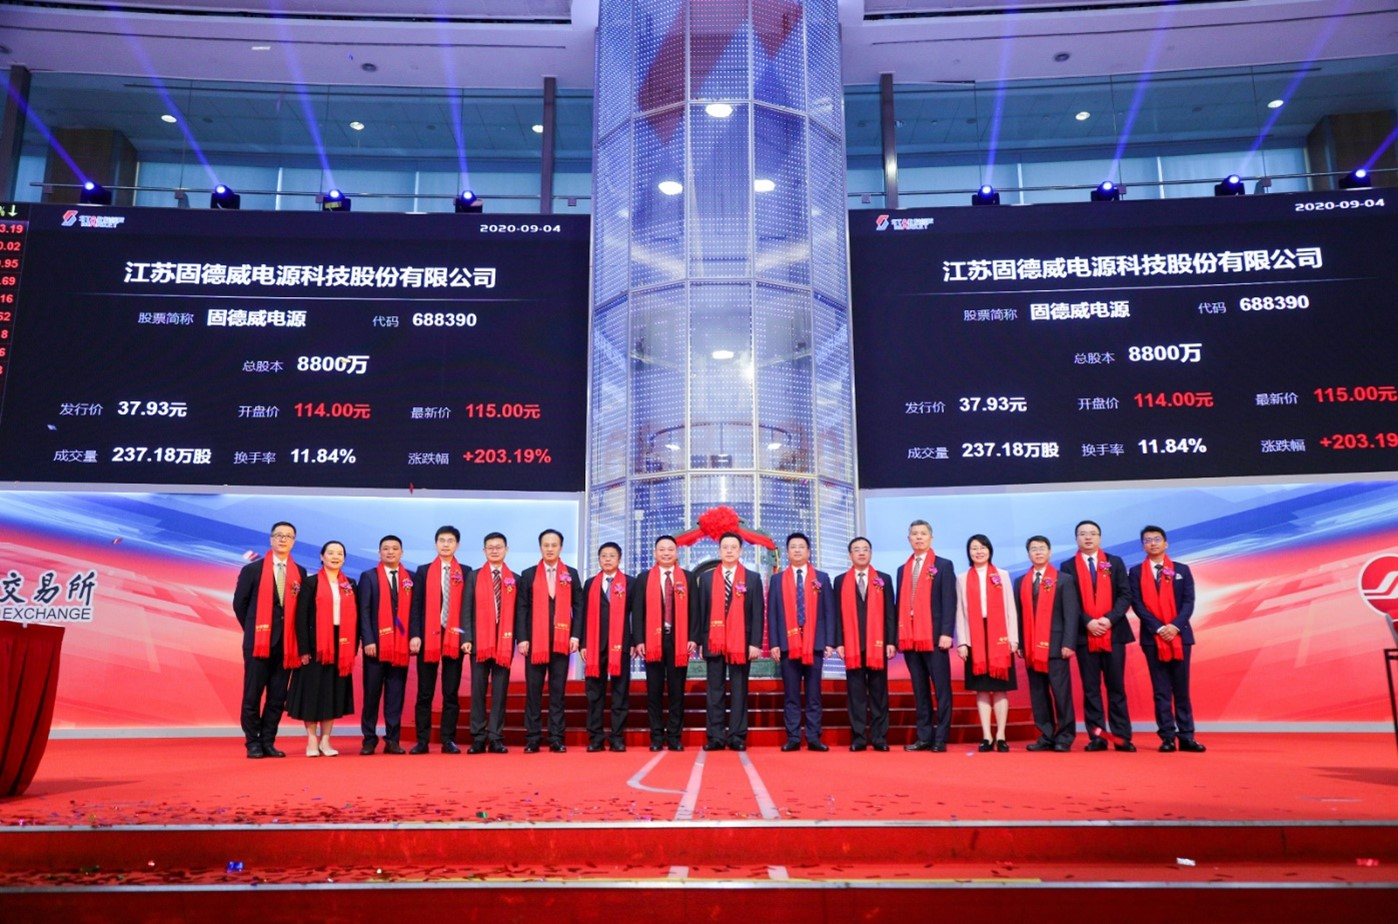 GoodWe was officially welcomed to the Shanghai Stock Exchange on 4 September 2020. Image: GoodWe.